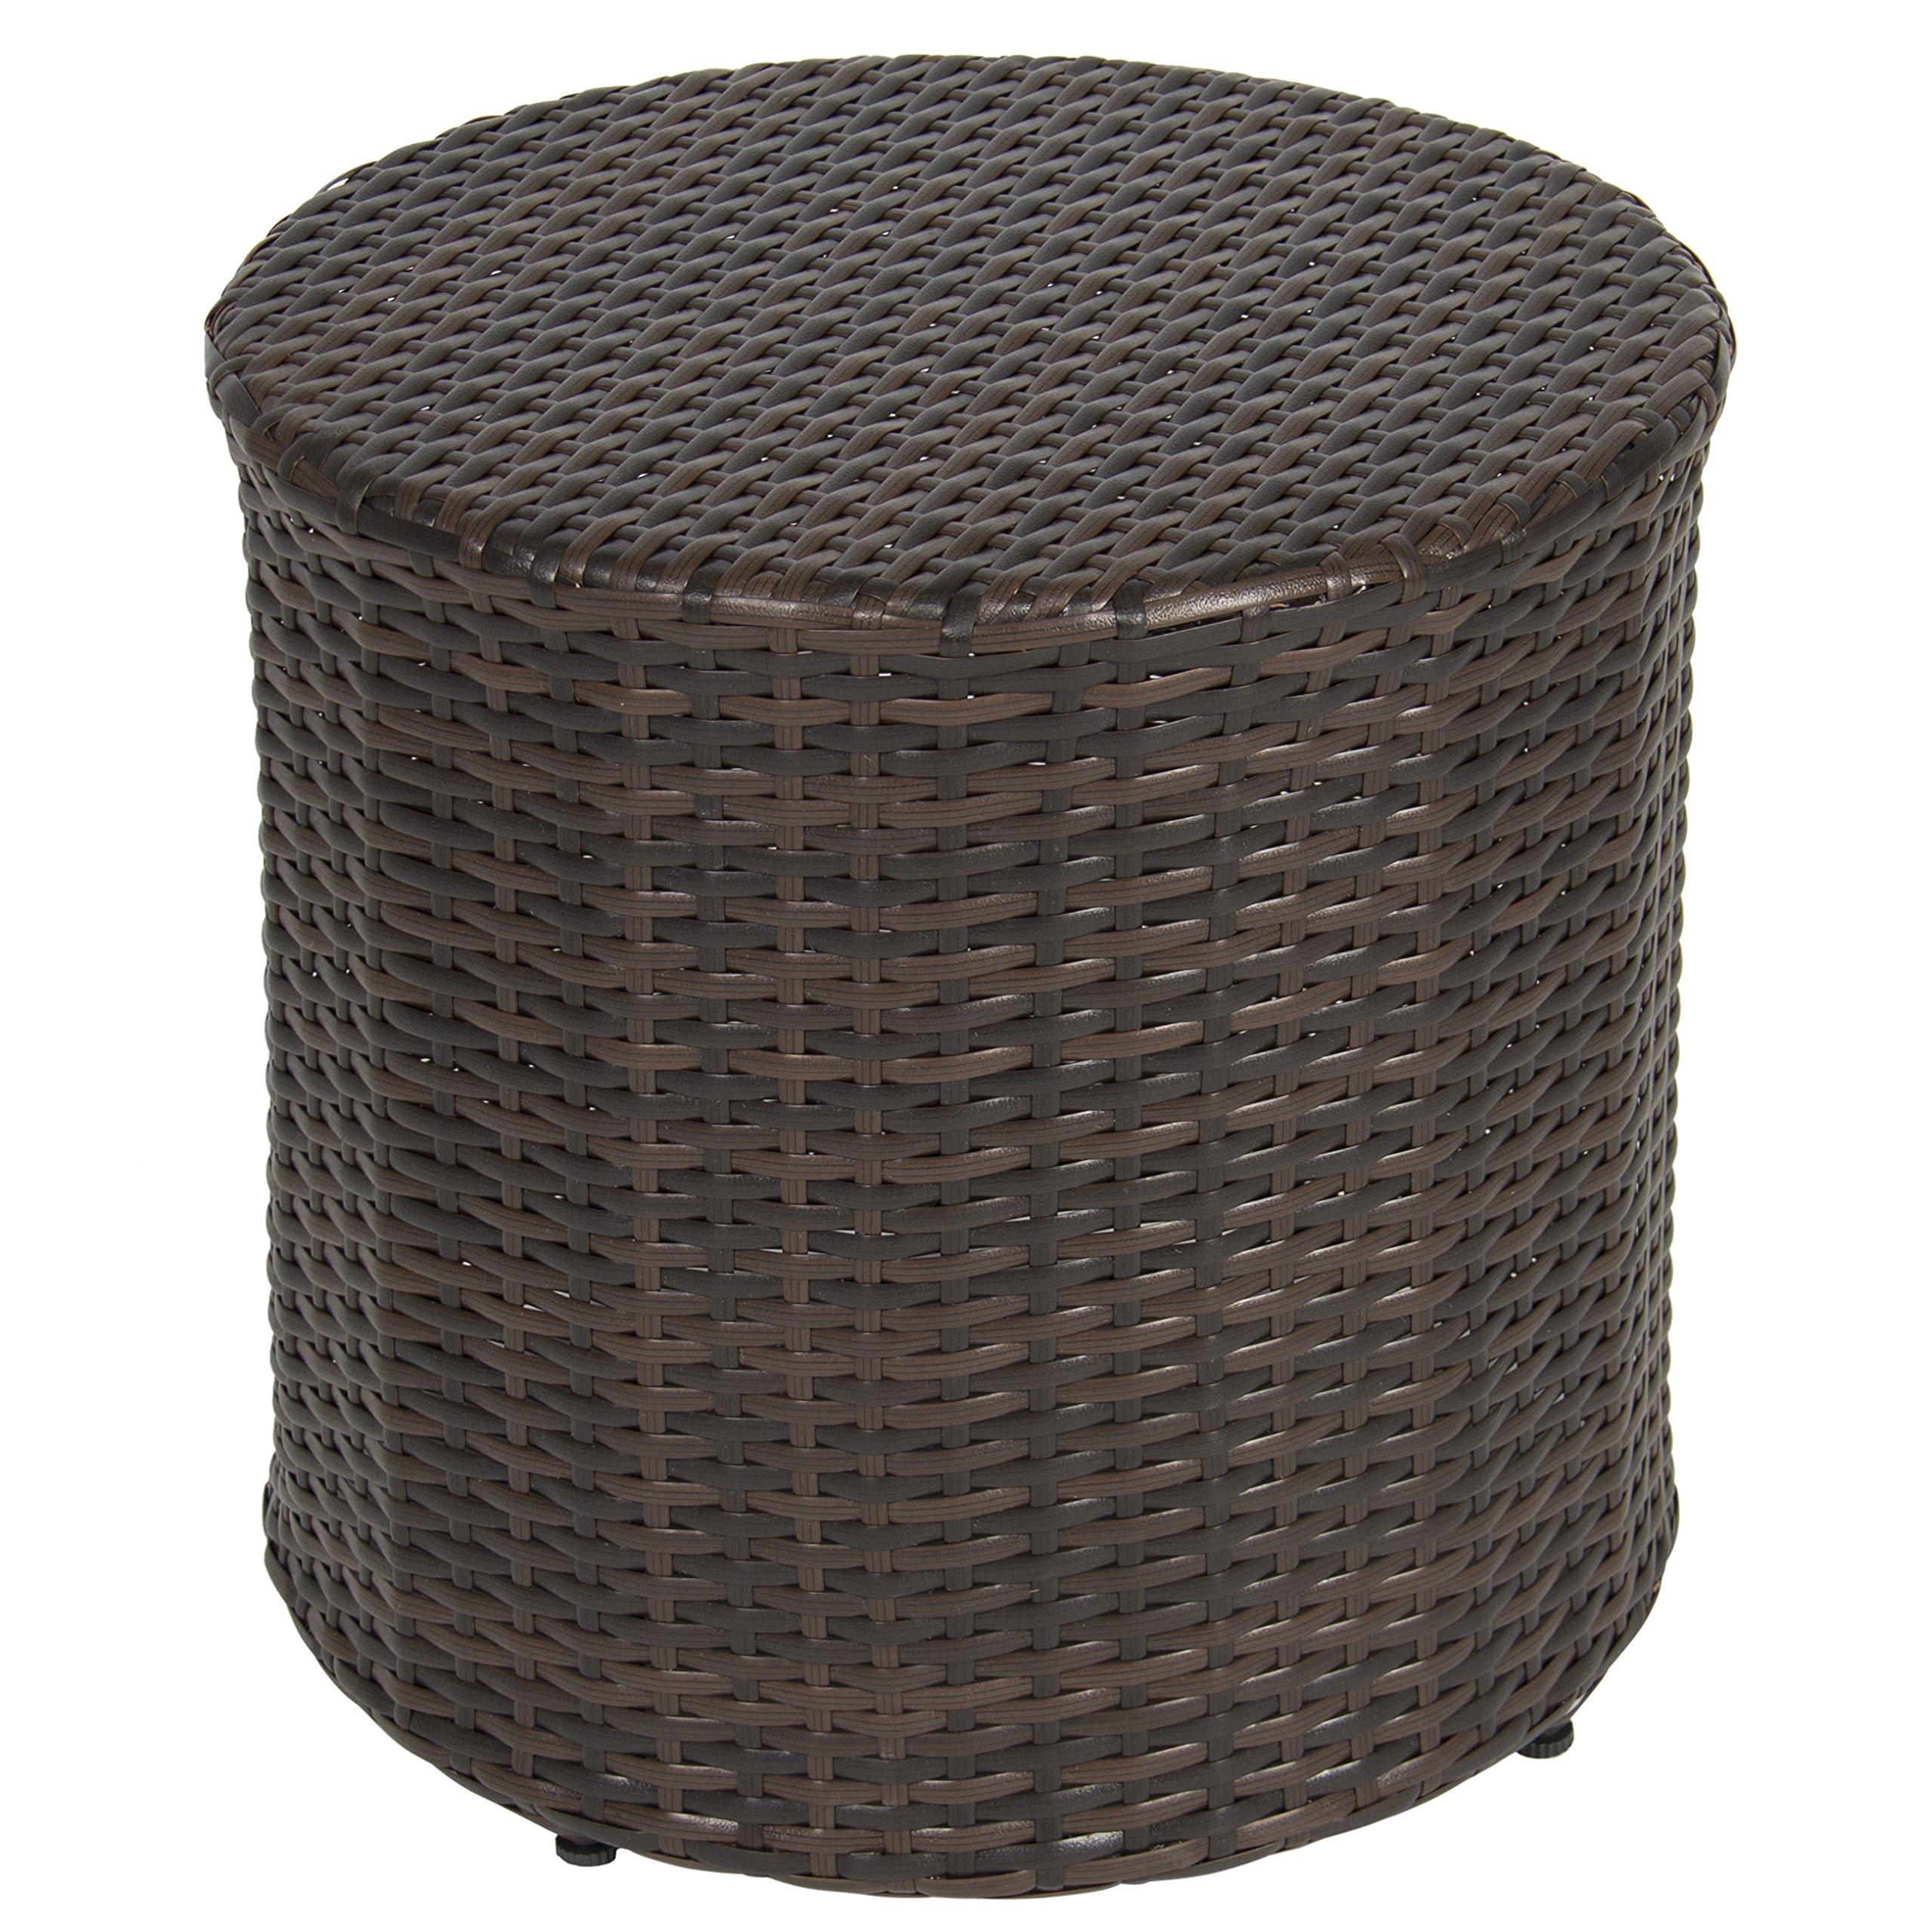 Best Choice Products Outdoor Wicker Rattan Barrel Side Table Patio Furniture Garden Backyard Pool by Best Choice Products